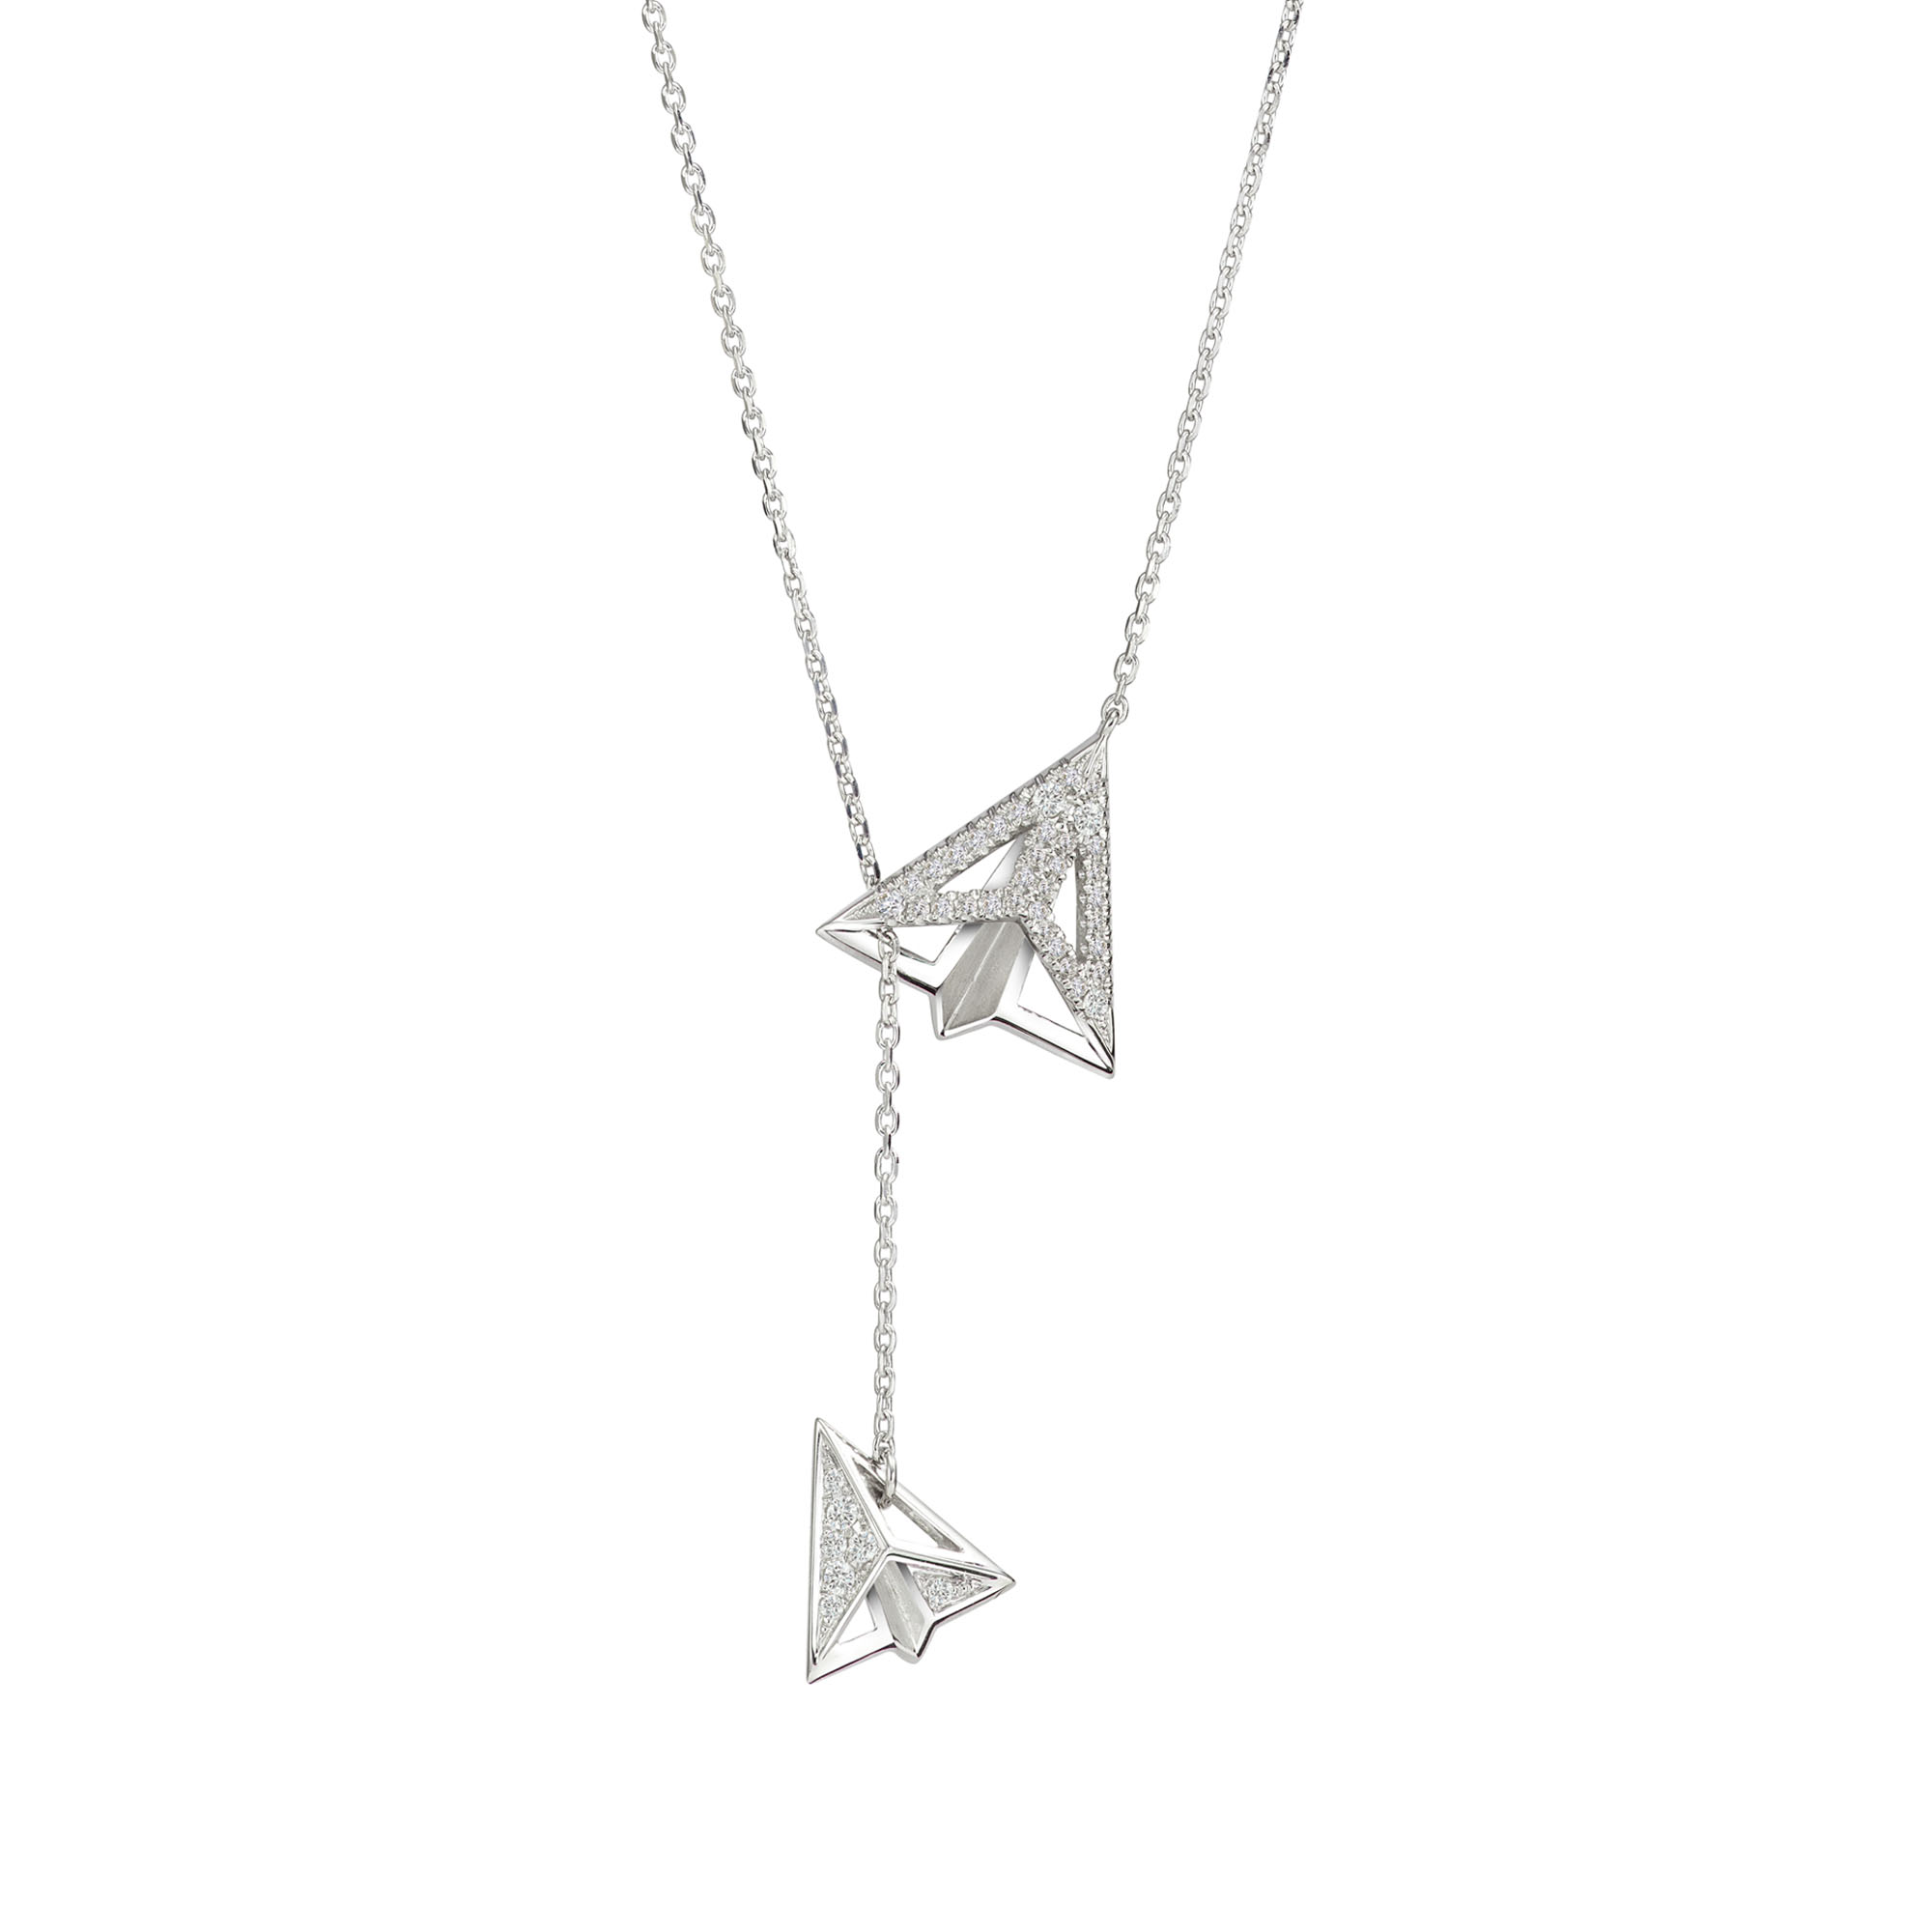 Soleluna AURY Paper Planes Two-Way Necklace